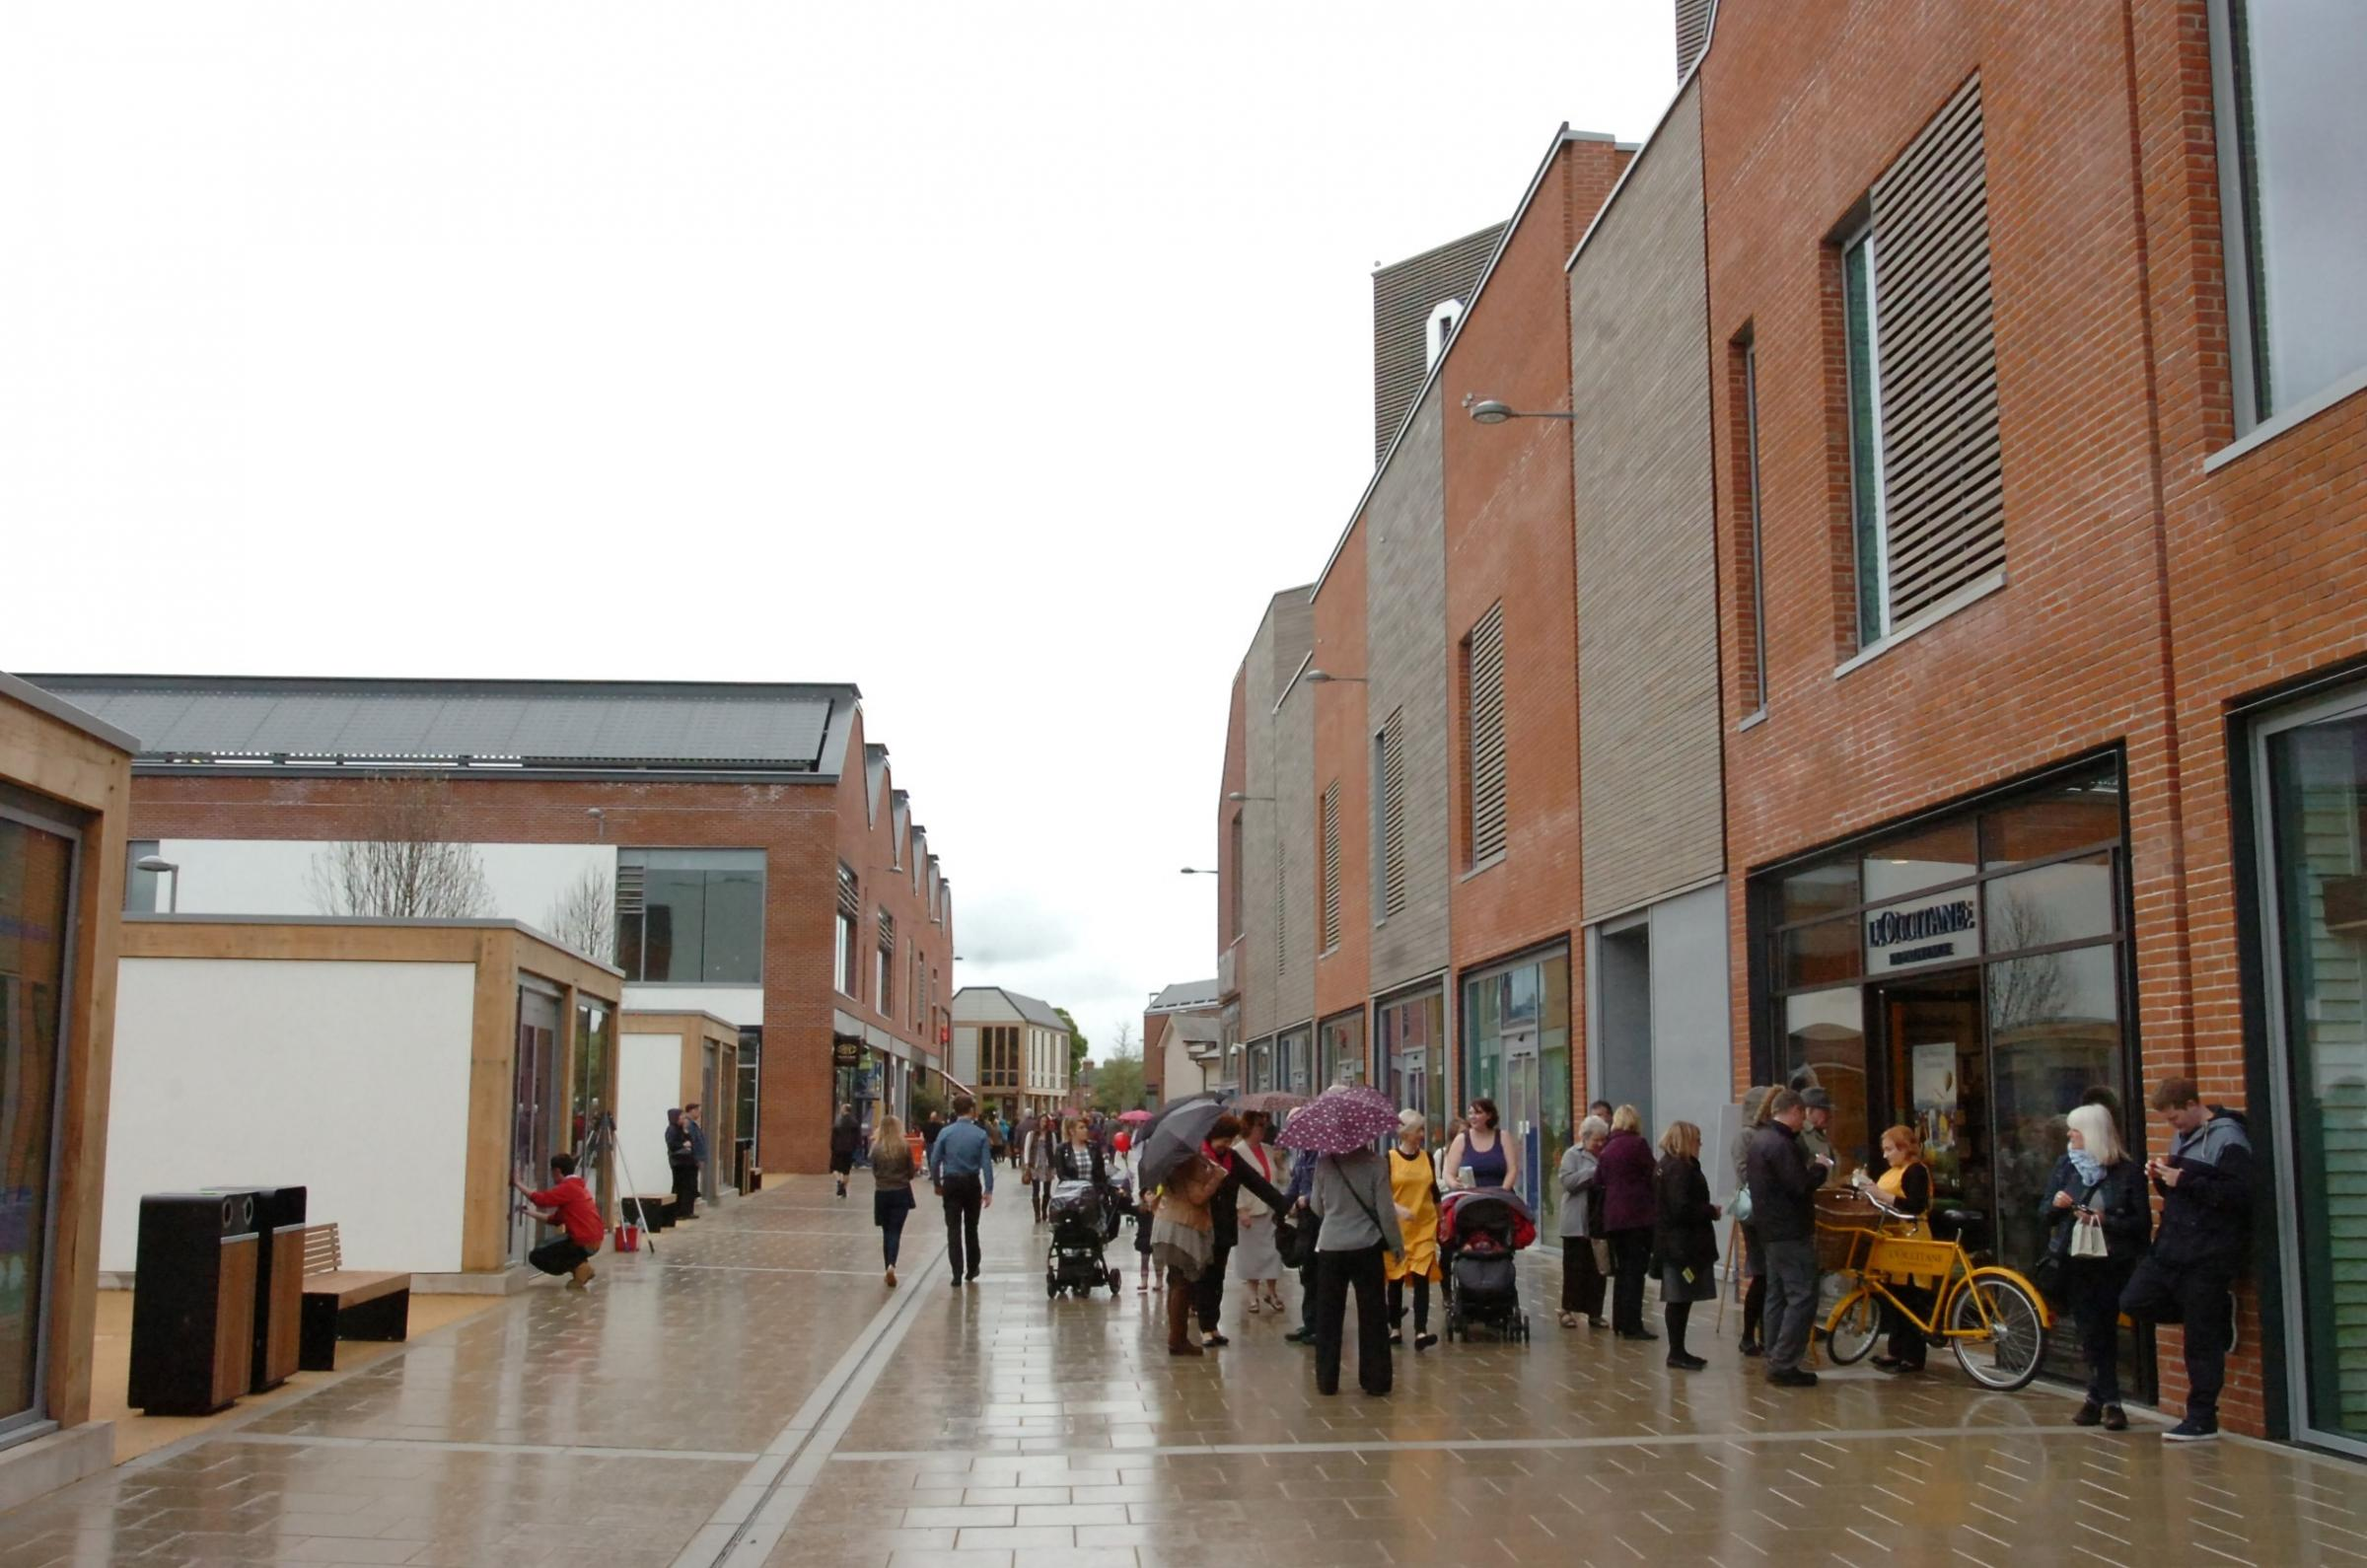 Crowds at the Old Market development as the first shops opened.